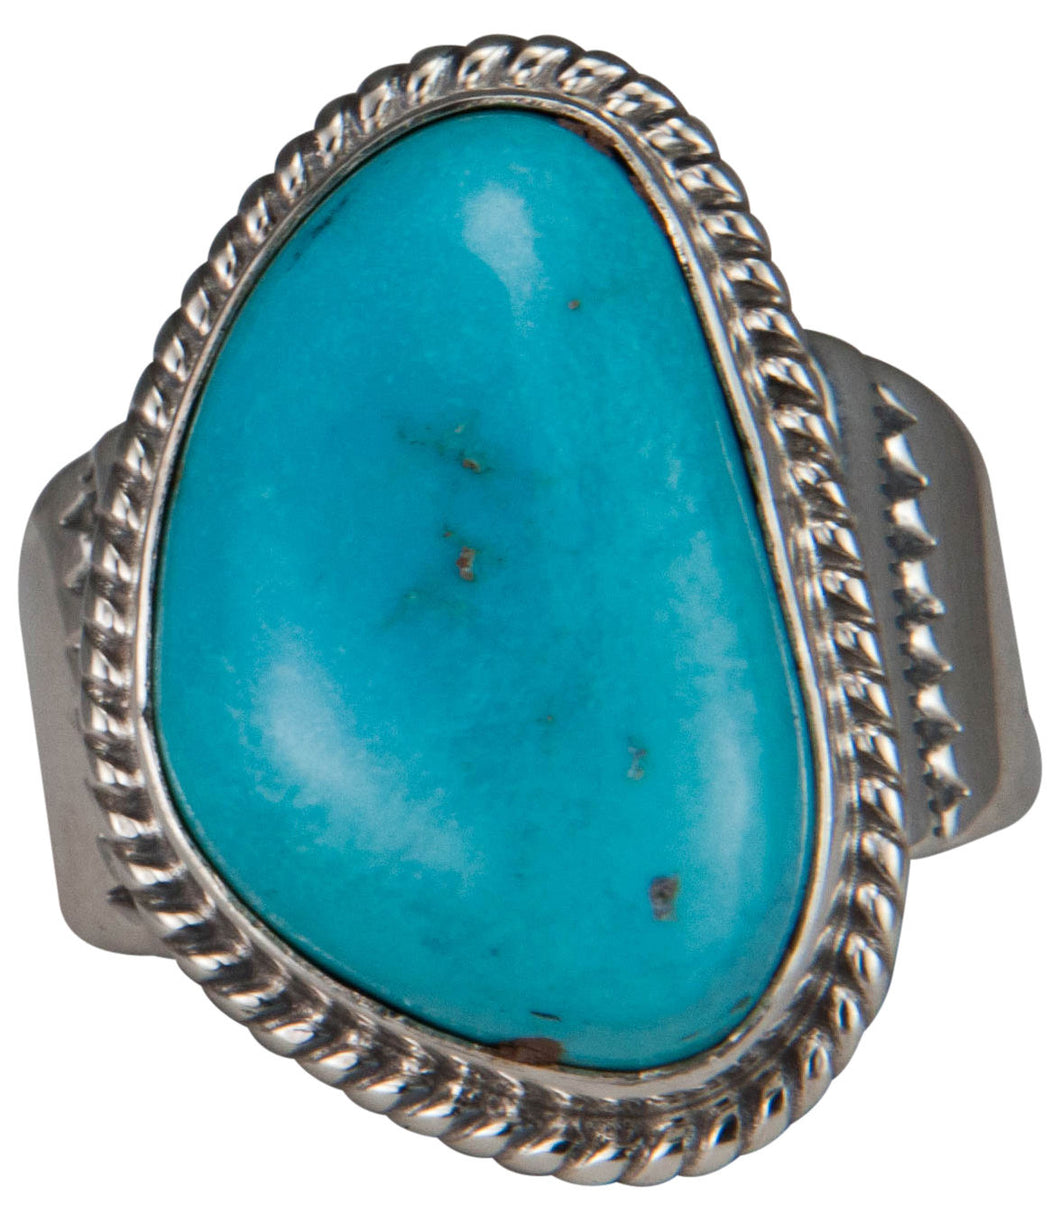 Navajo Native American Castle Dome Turquoise Ring Size 10 3/4 SKU229605